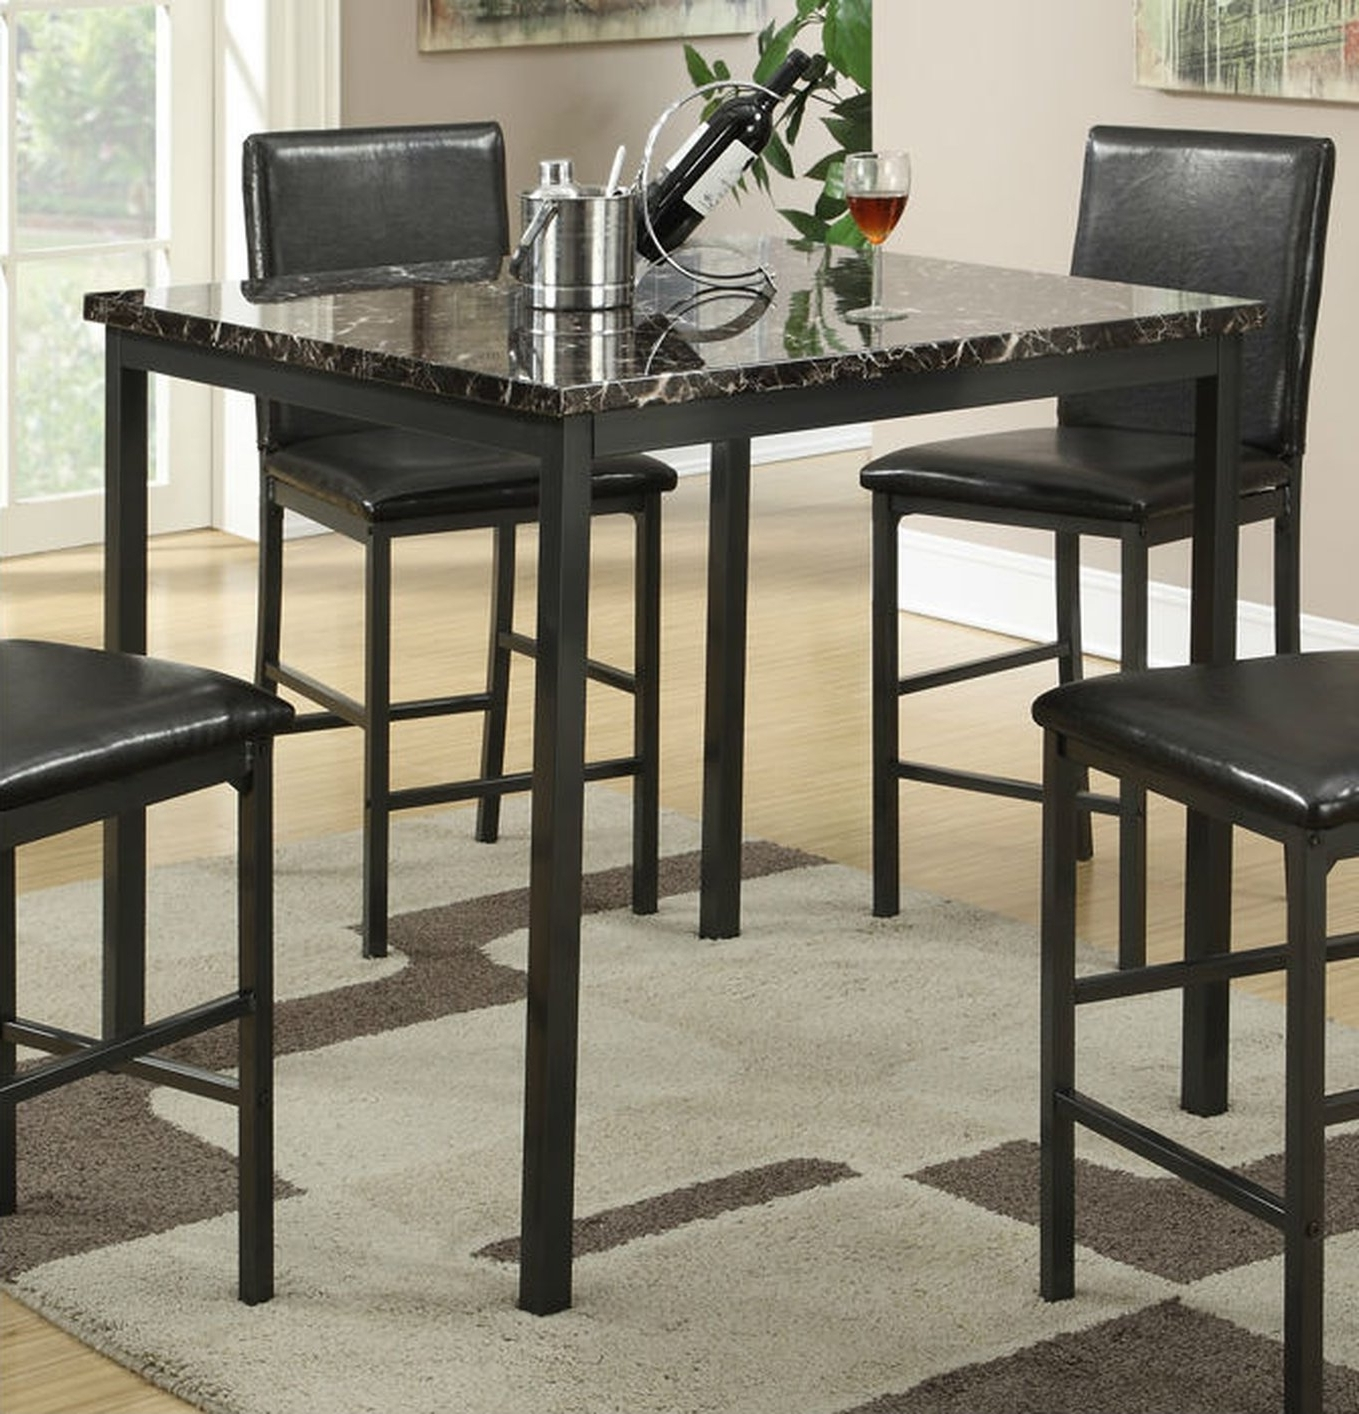 Palazzo Rectangle Dining Tables Regarding 2017 Black Metal Dining Table – Steal A Sofa Furniture Outlet Los Angeles Ca (View 14 of 25)